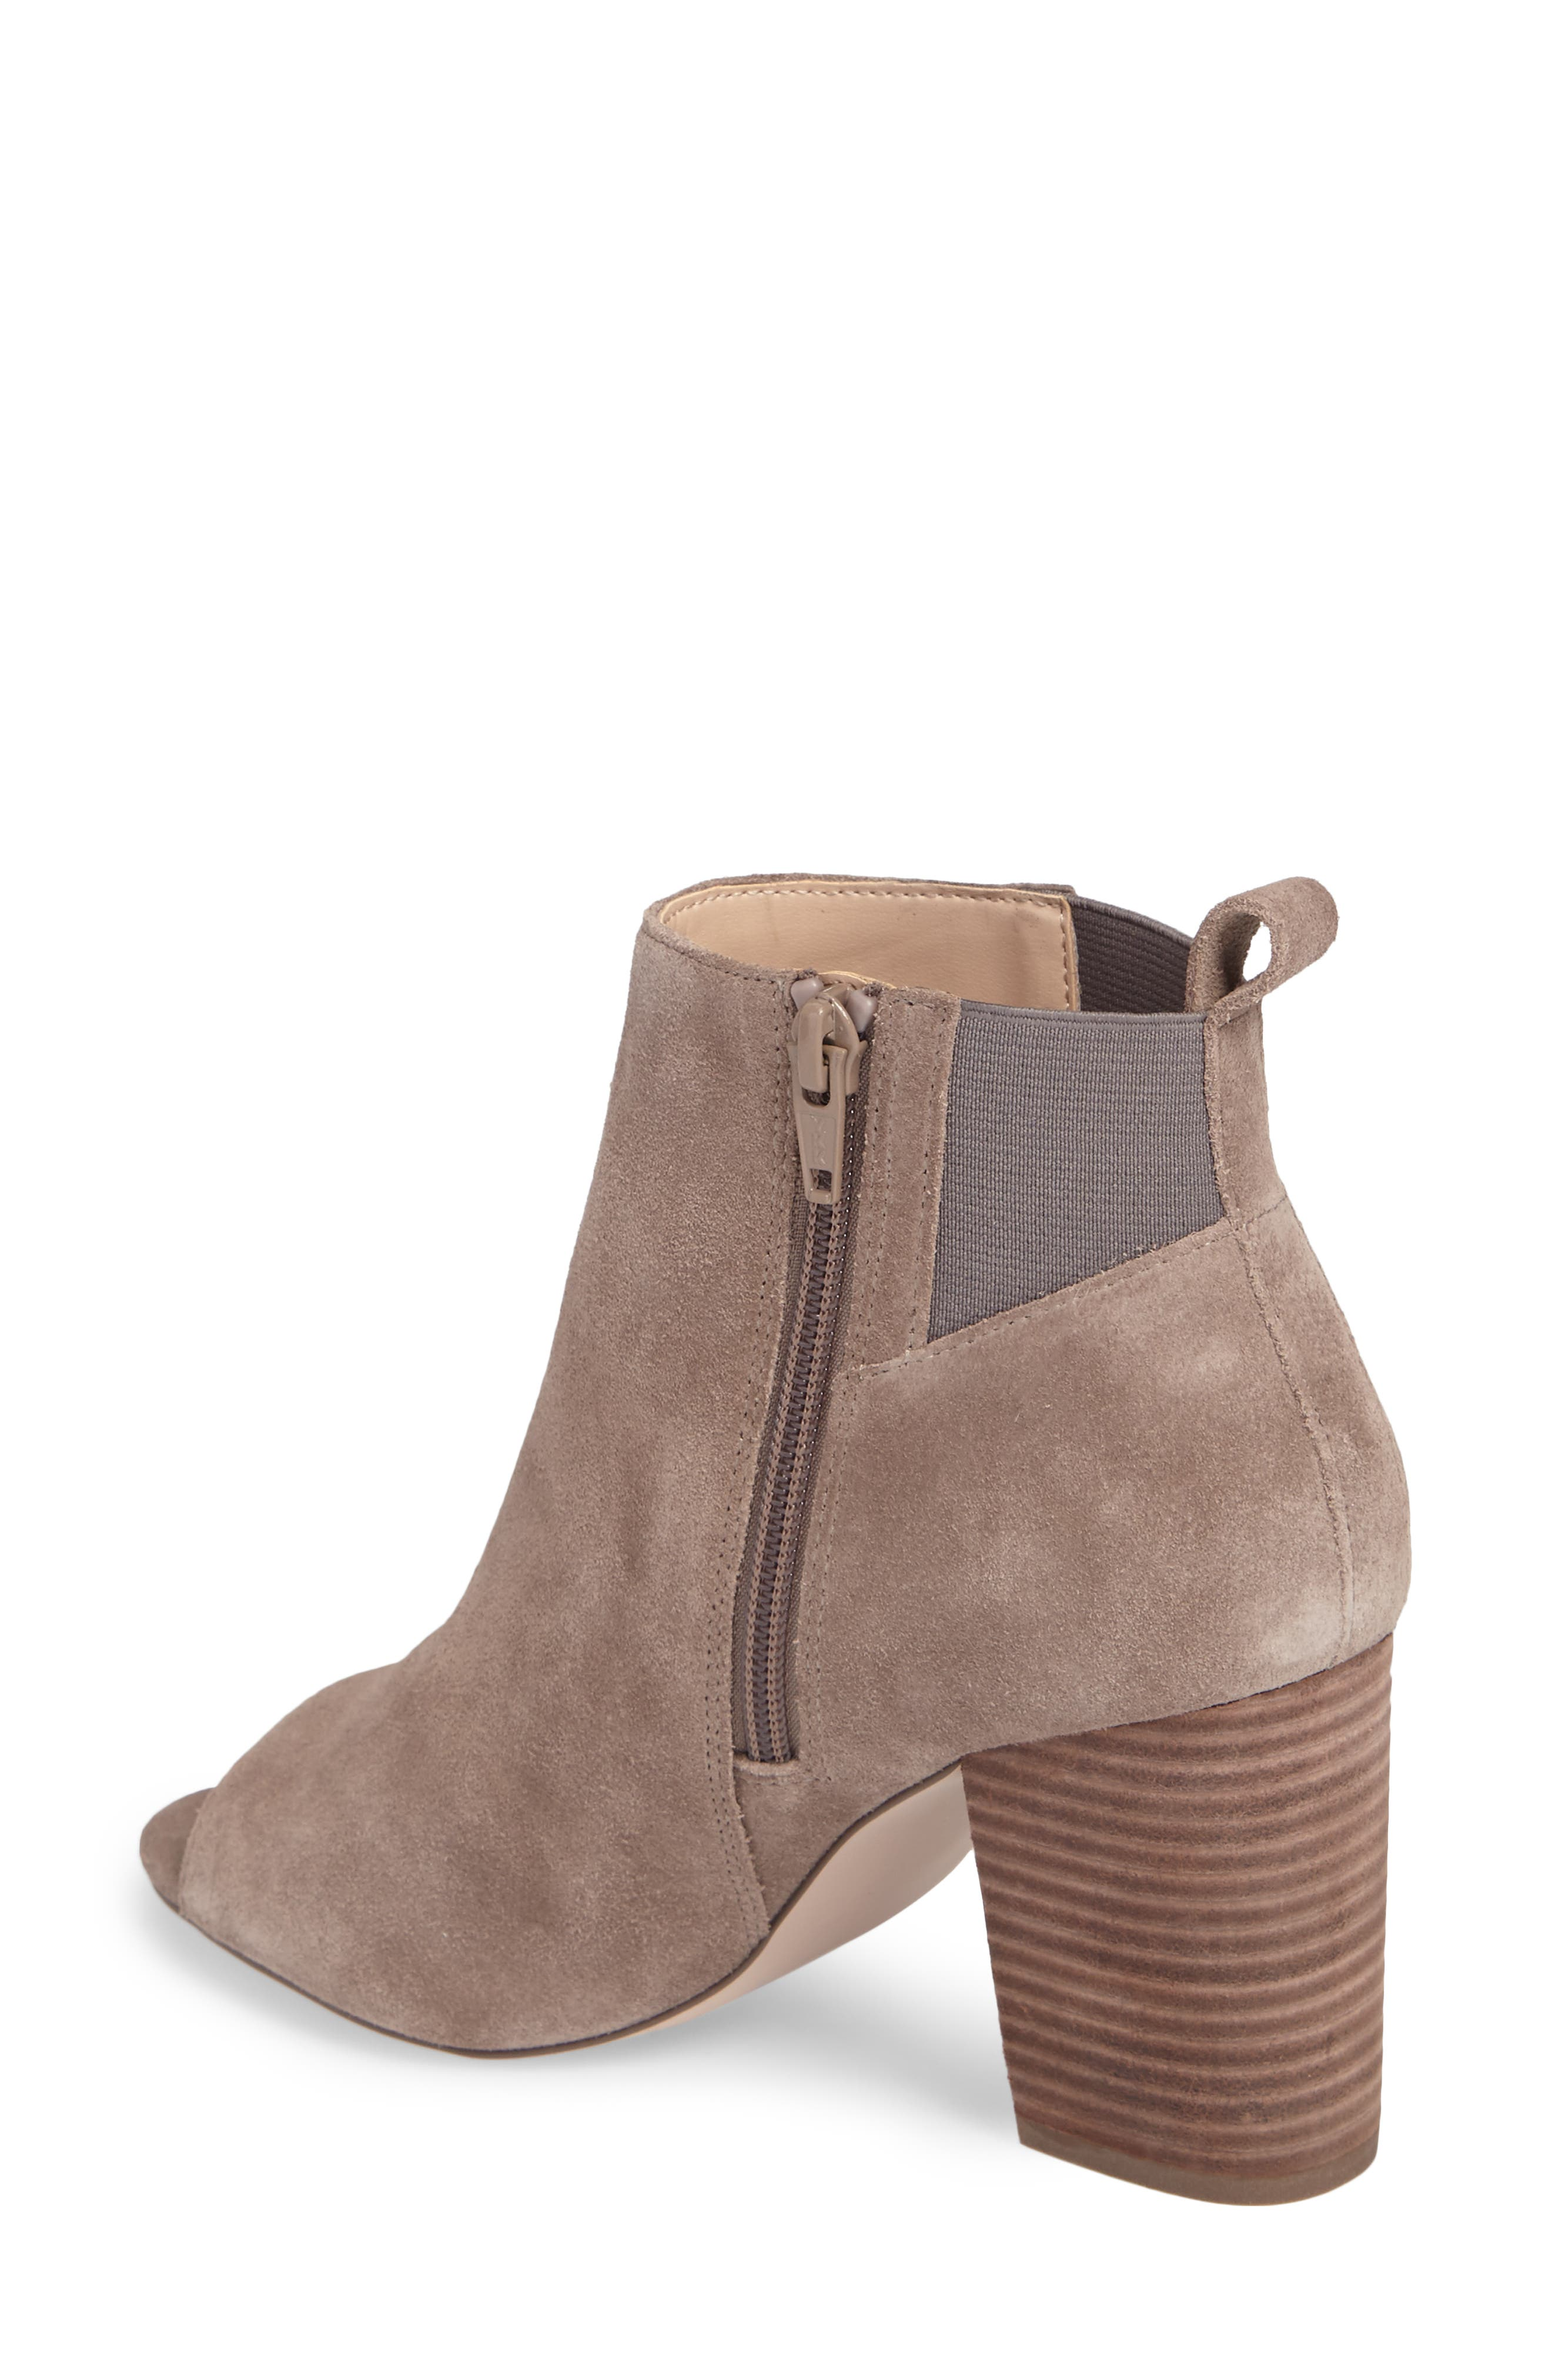 Vita Peep Toe Bootie,                             Alternate thumbnail 2, color,                             020